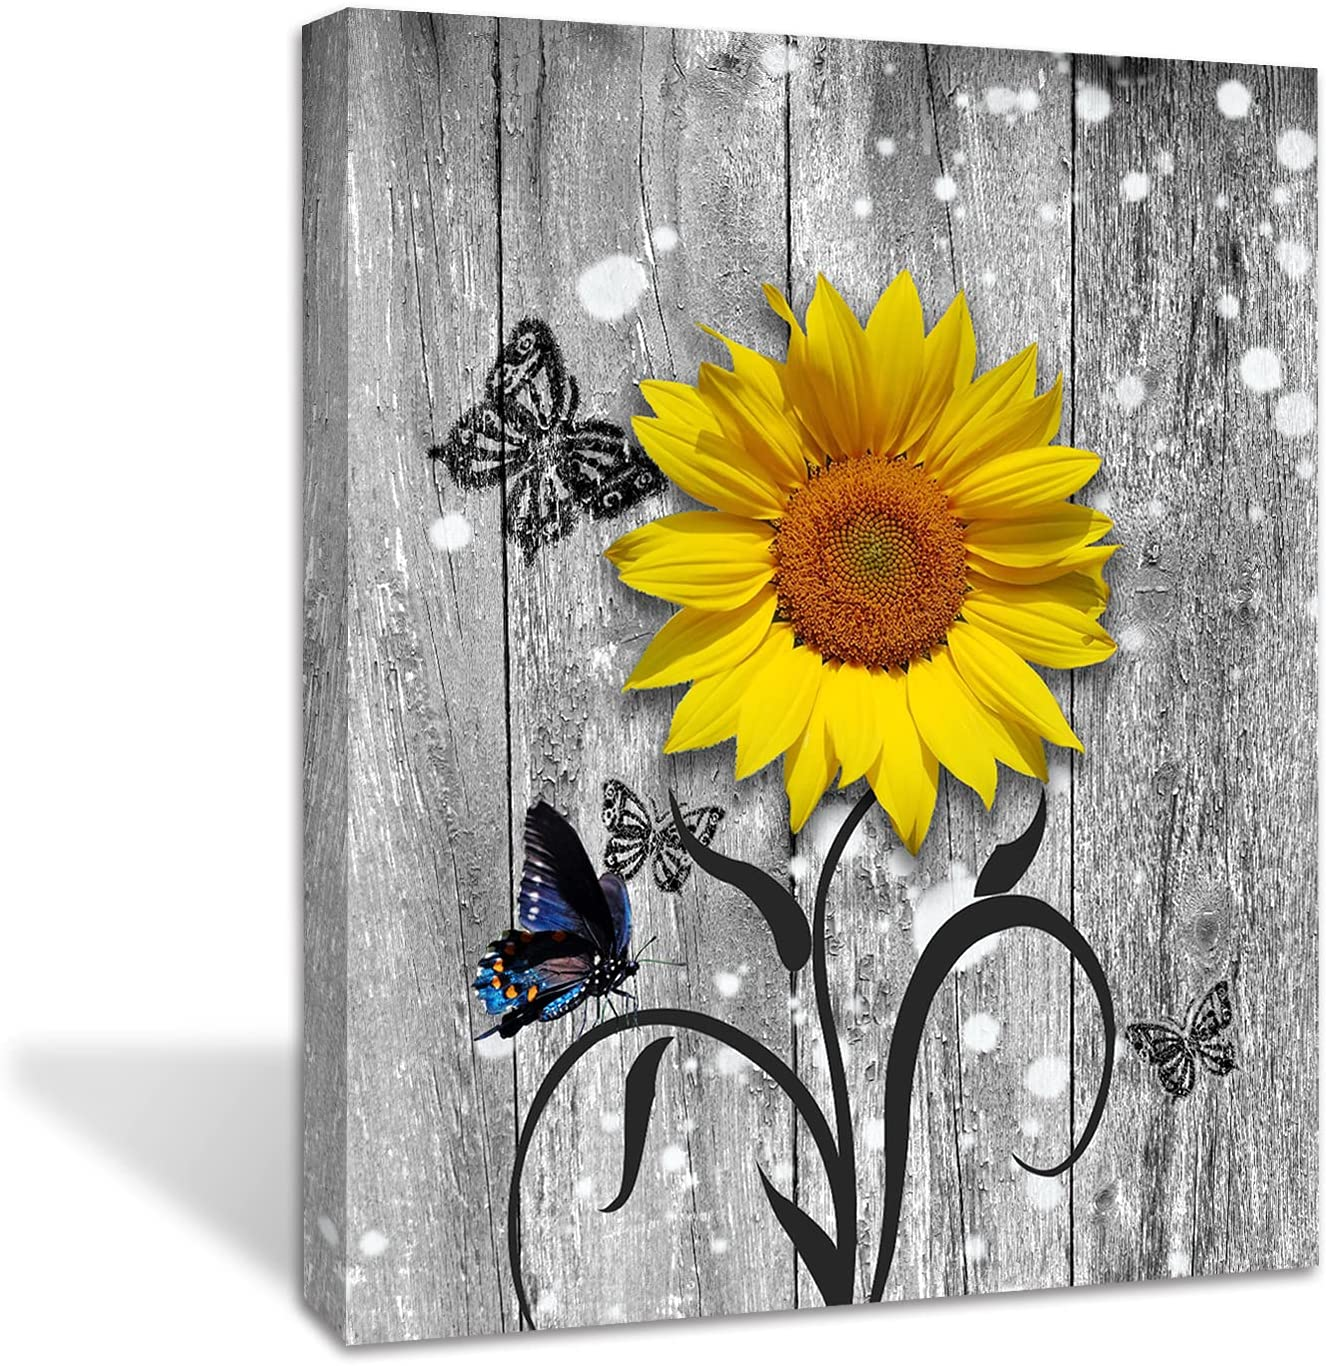 Sunflower Butterfly Wall art on The Gray Wood Wall Decor -Living Room Bathroom Bedroom Office Wall Decor Home- Ready to Hang (sunflower, 16x20inch)